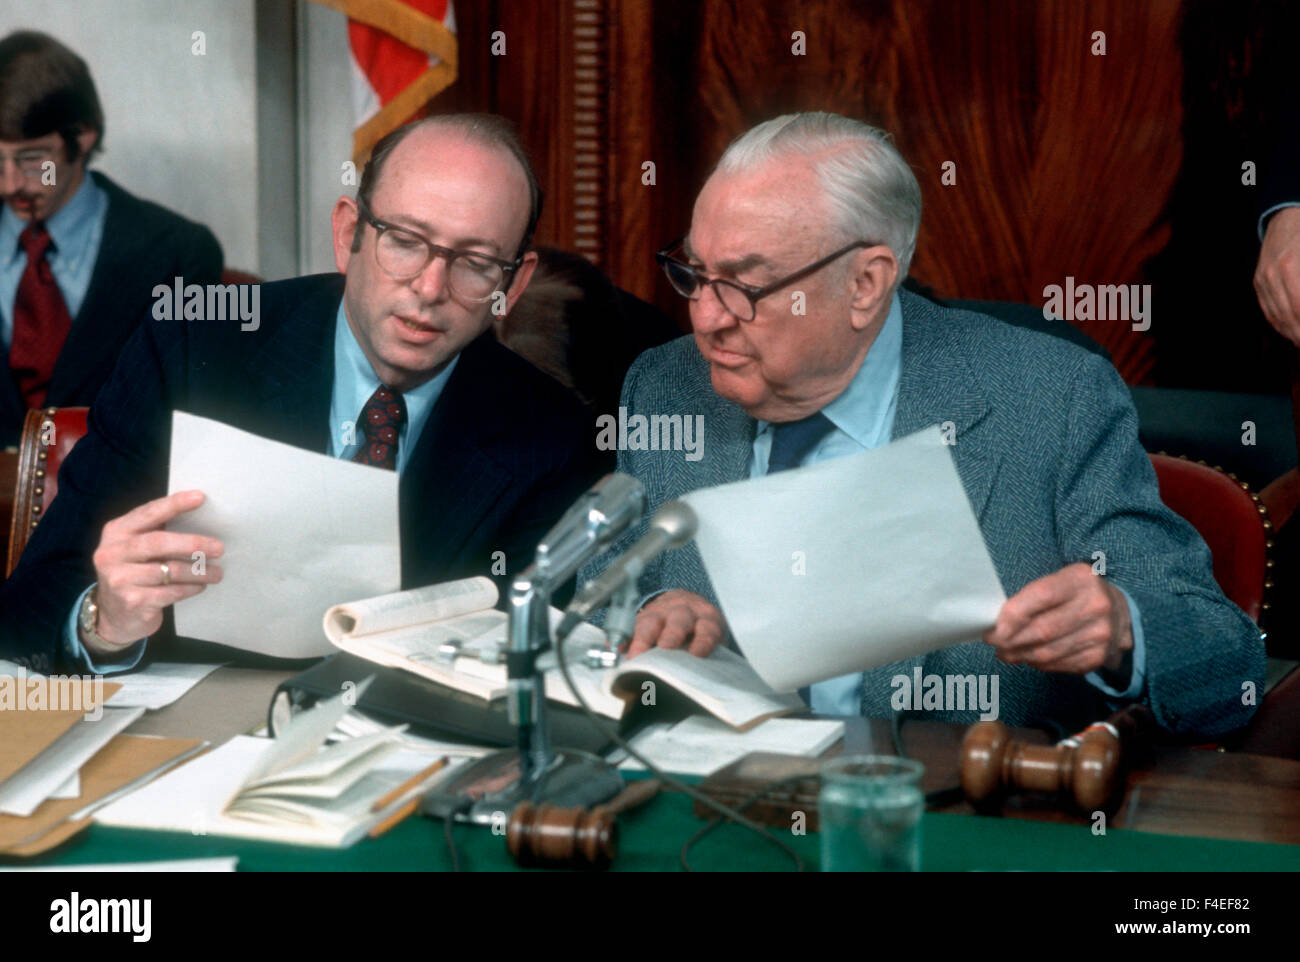 Chief counsel Sam Dash talks with Committee Chairman Senator Sam Erwin during a Watergate hearing in May 1973. - Stock Image